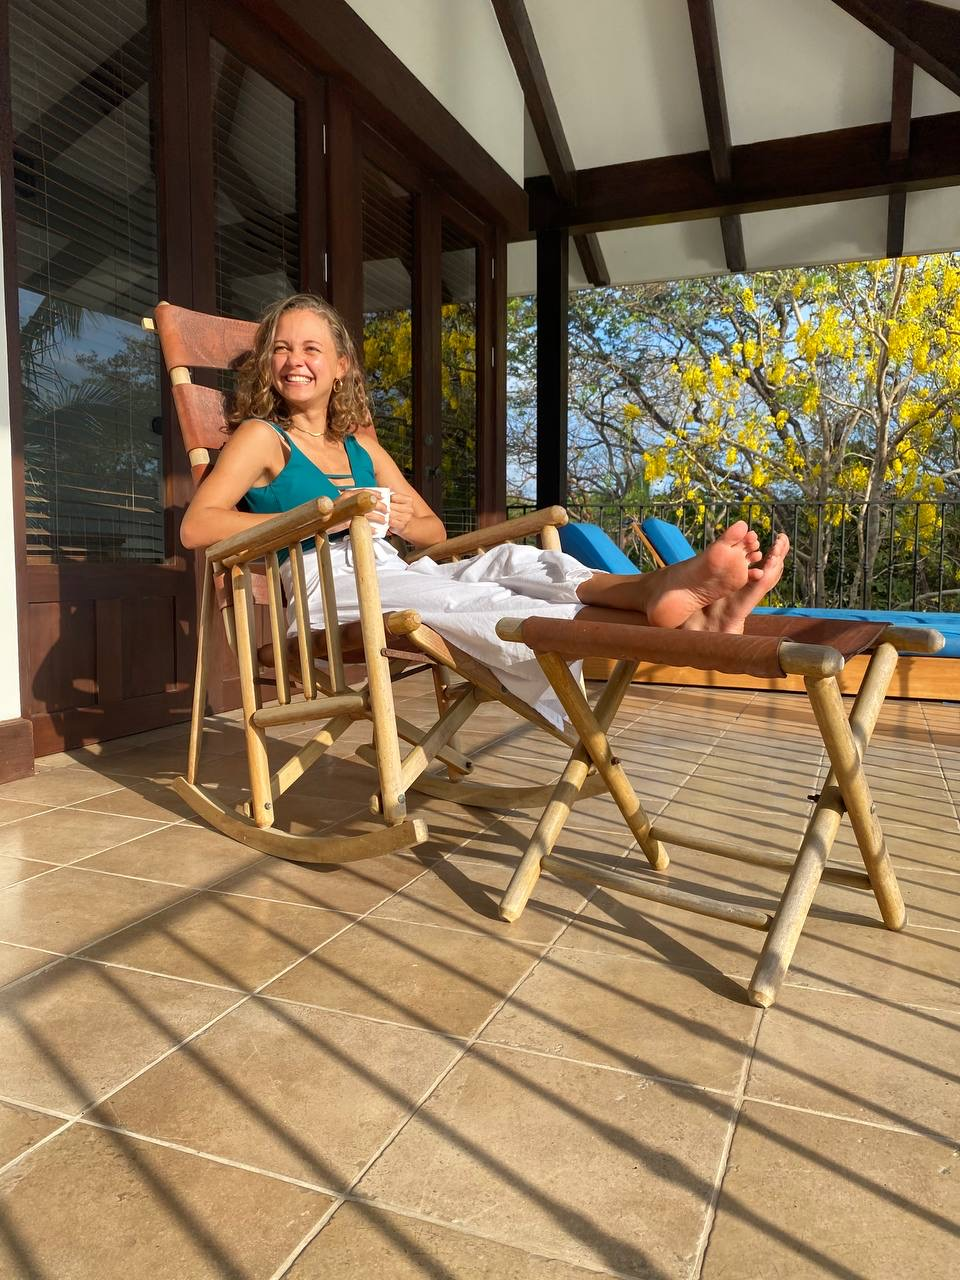 Go to Rocking Chairs Beach Photoshoot